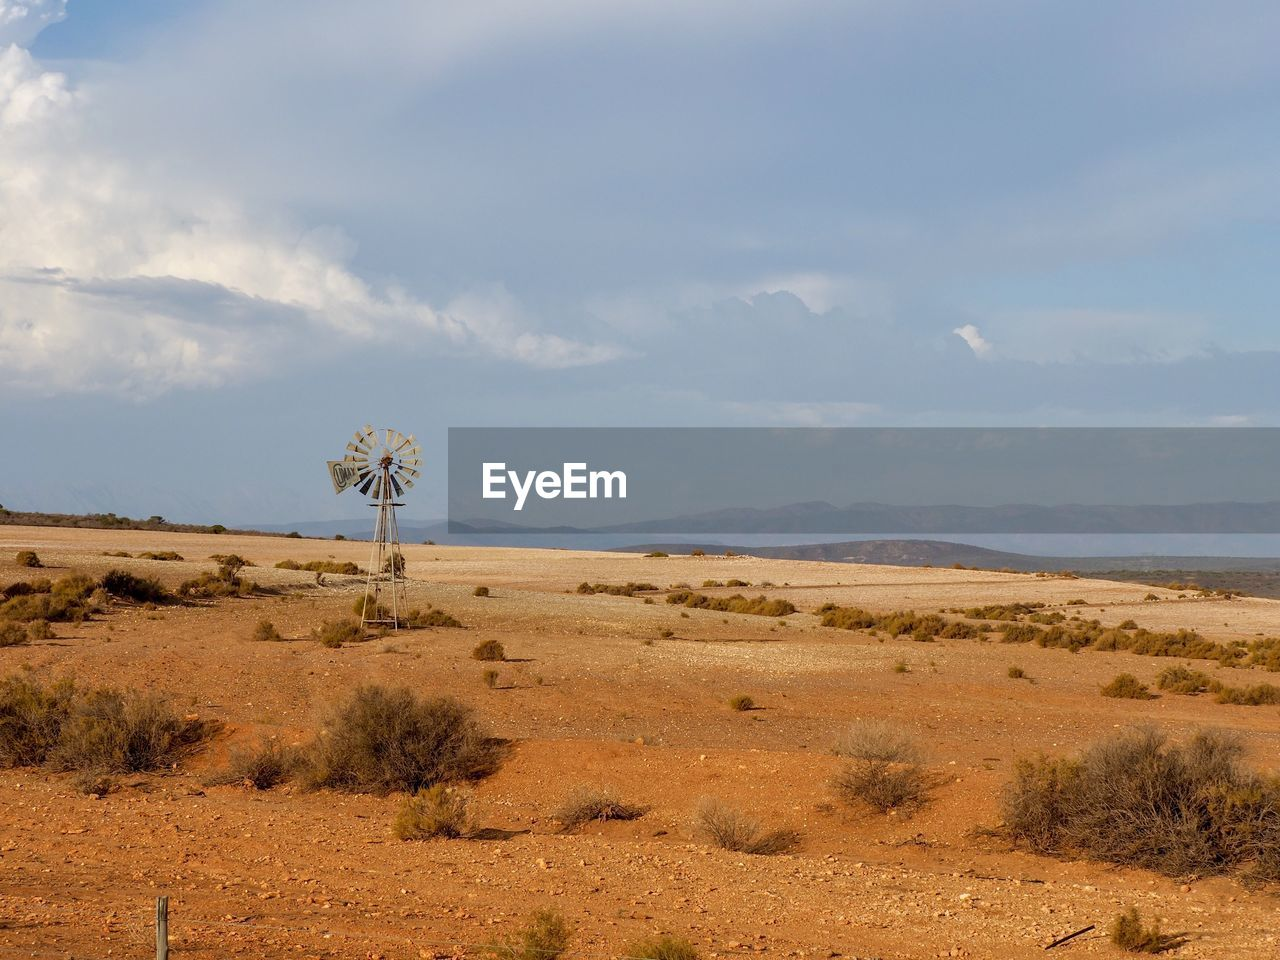 environment, landscape, sky, land, scenics - nature, plant, cloud - sky, non-urban scene, tranquil scene, beauty in nature, field, tranquility, nature, no people, horizon over land, remote, day, horizon, tree, desert, arid climate, climate, semi-arid